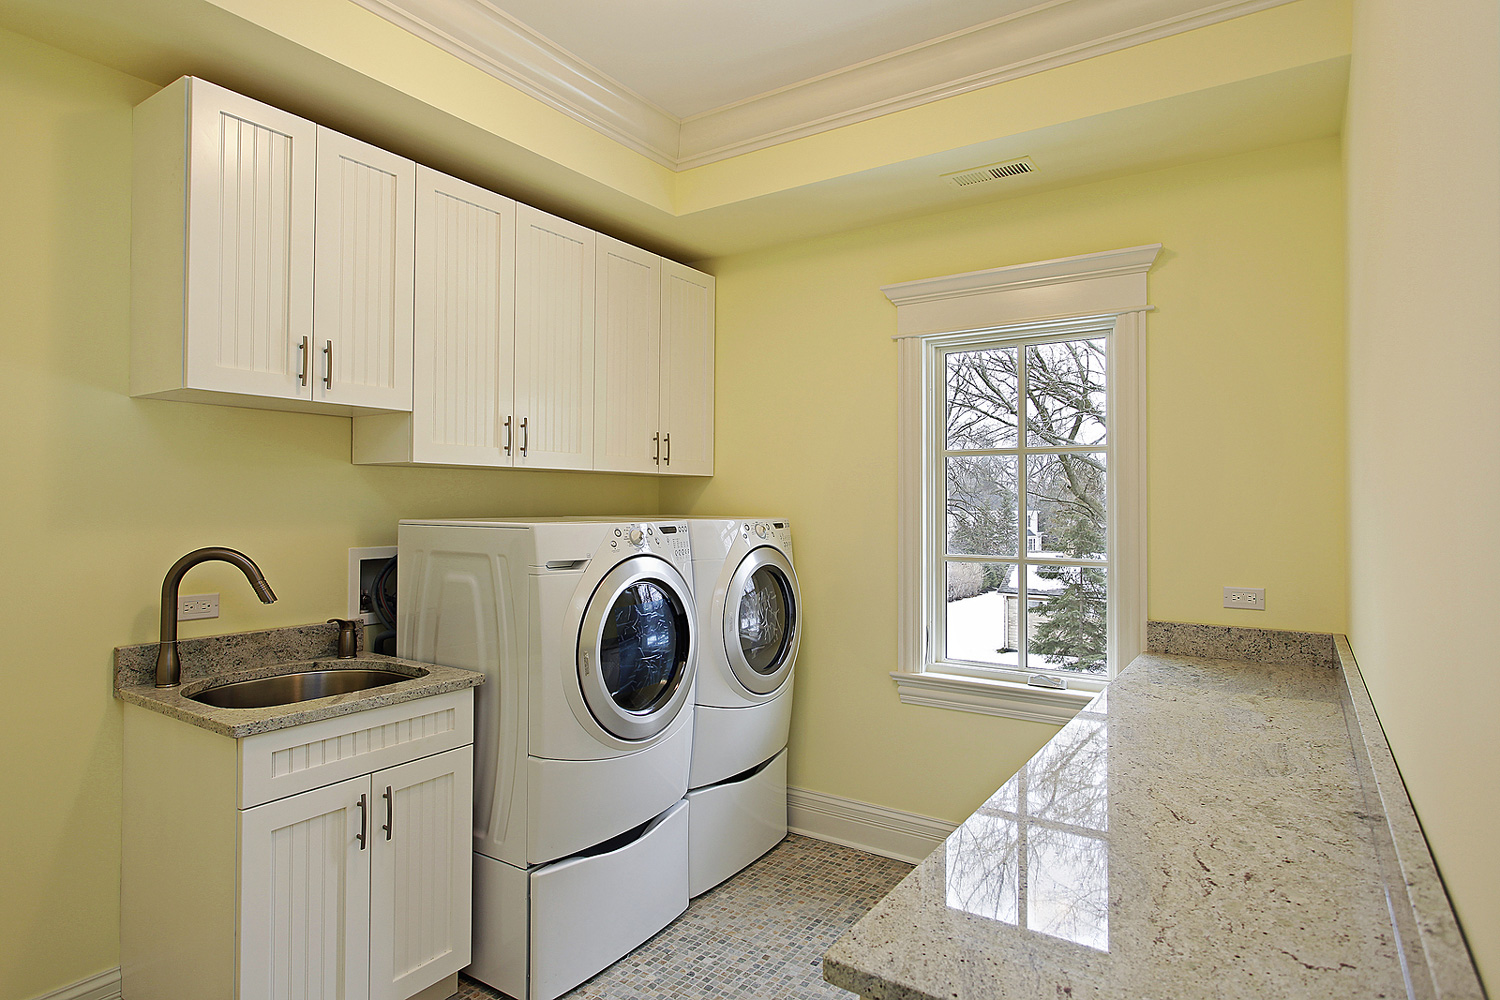 Kitchen Utility Room Ideas Las Vegas Laundry Solutions Custom Closet Systems Inc